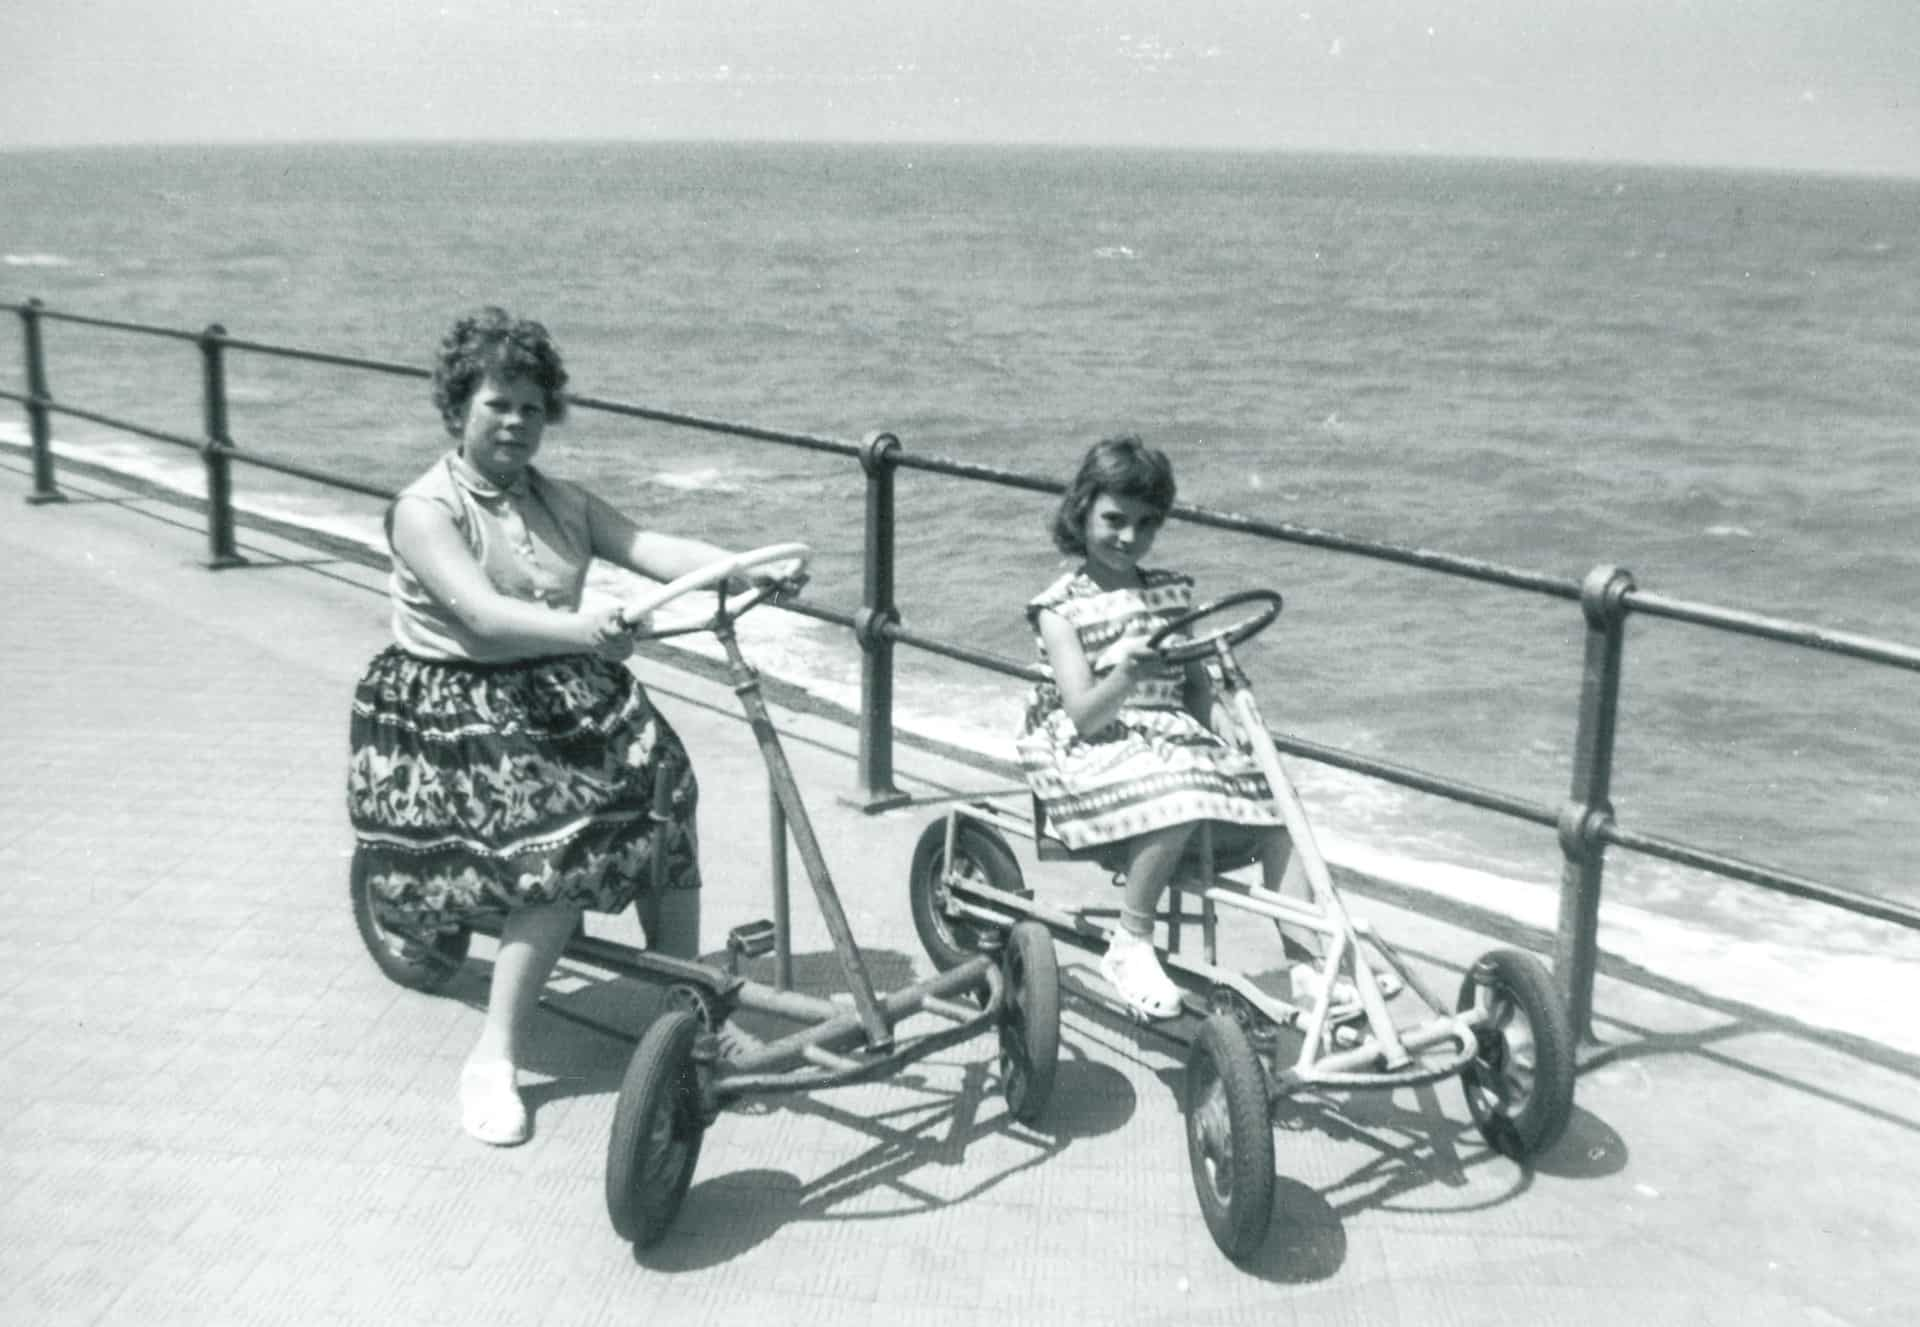 This was the year my mum died - 1960. My nan and grandad took us to Ostend for a holiday.